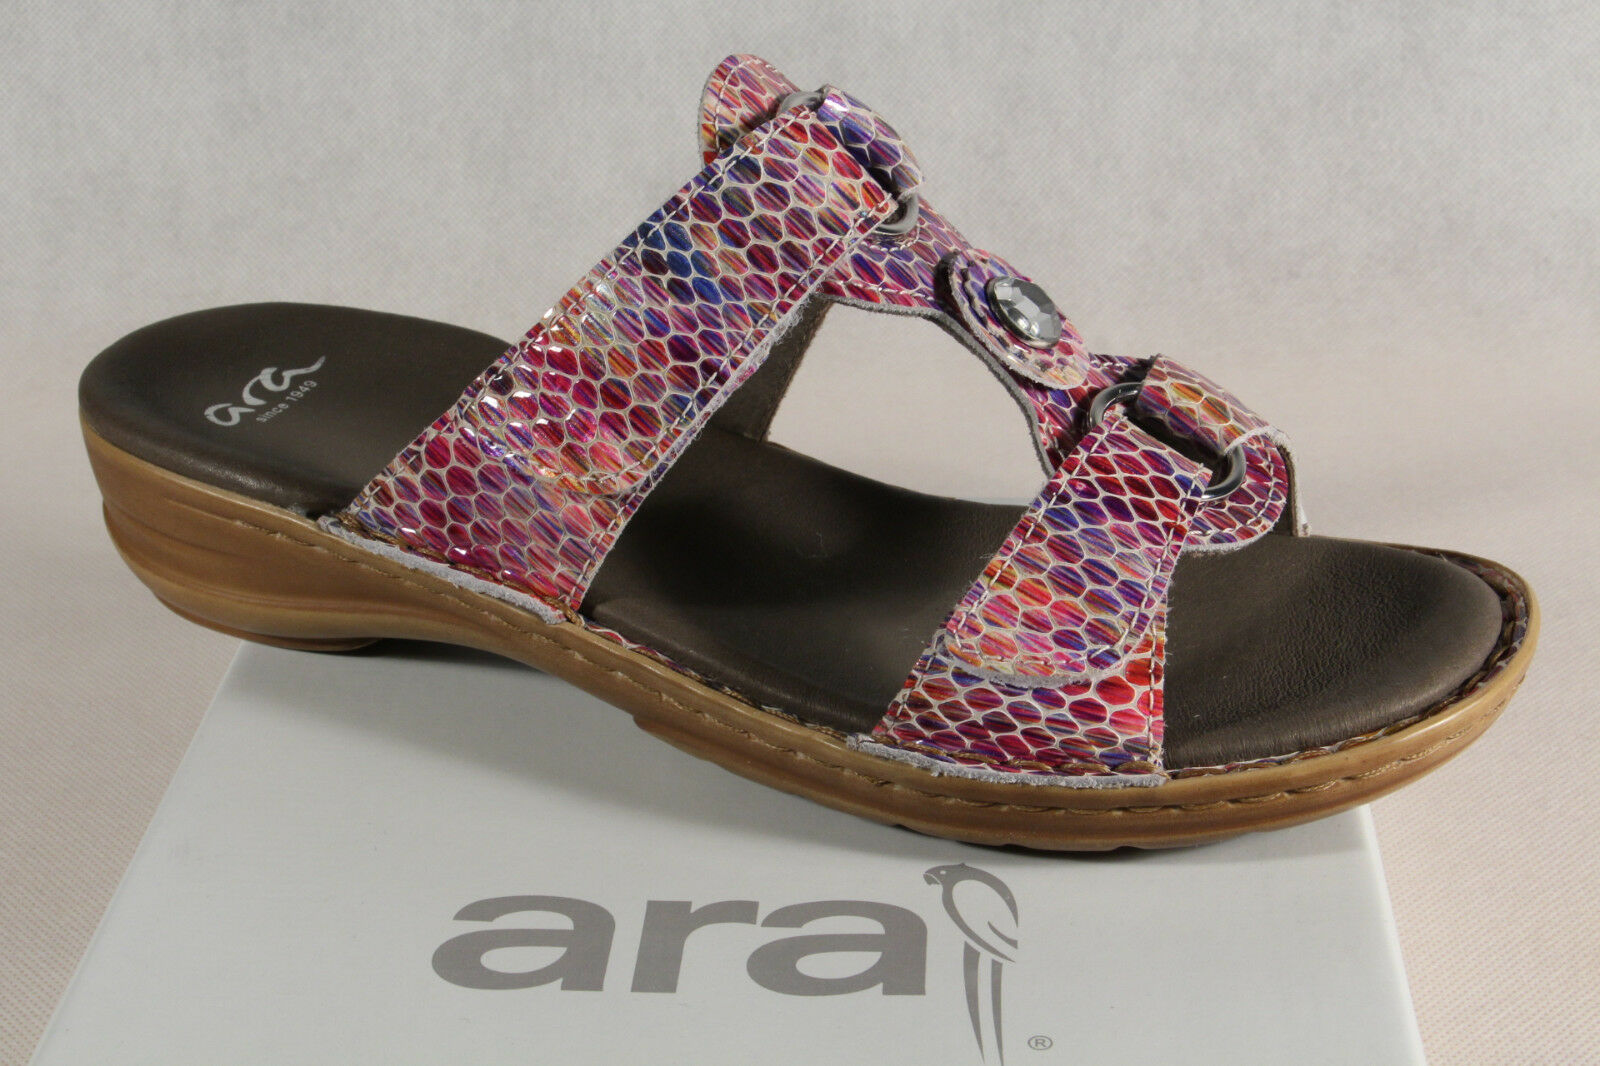 Ara Mules Mules Geniune Leather, Multicolour, Touch Fastener 27273 New